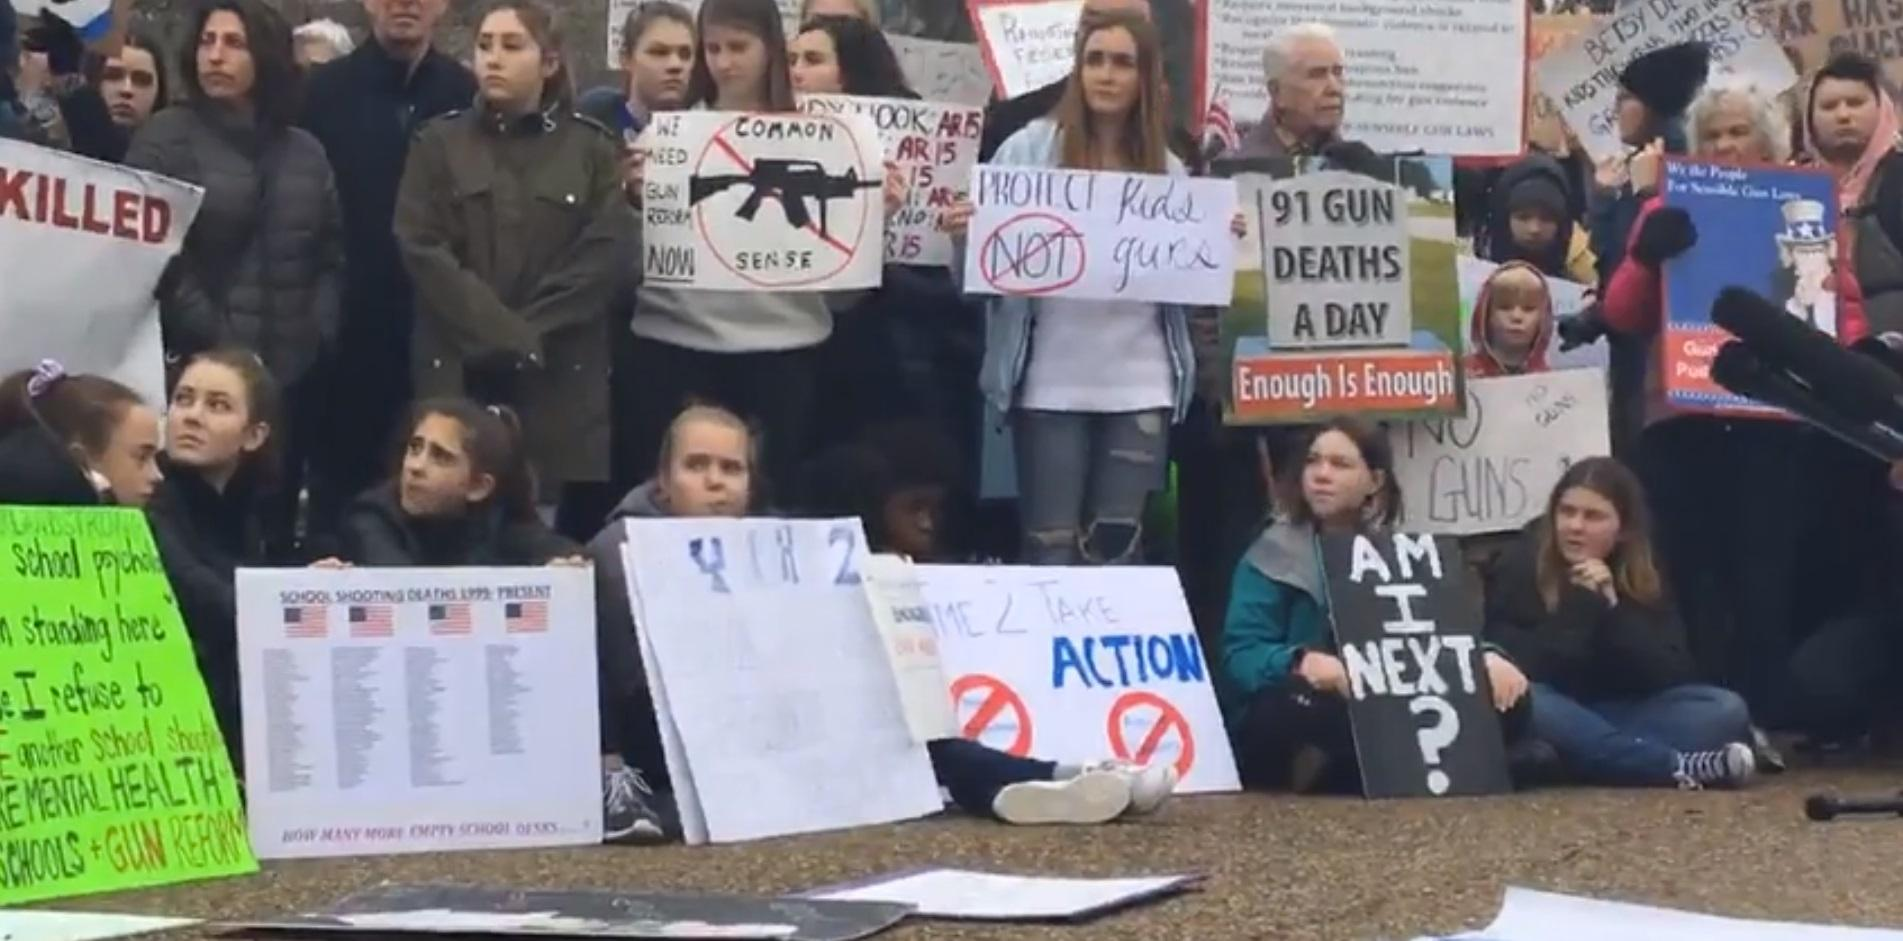 Teenagers in Washington, D.C. hold a lie-in protest at the White House on Monday, February 19, 2018. Activists were demanding action to prevent school shootings. (Image: WJLA)<p></p>